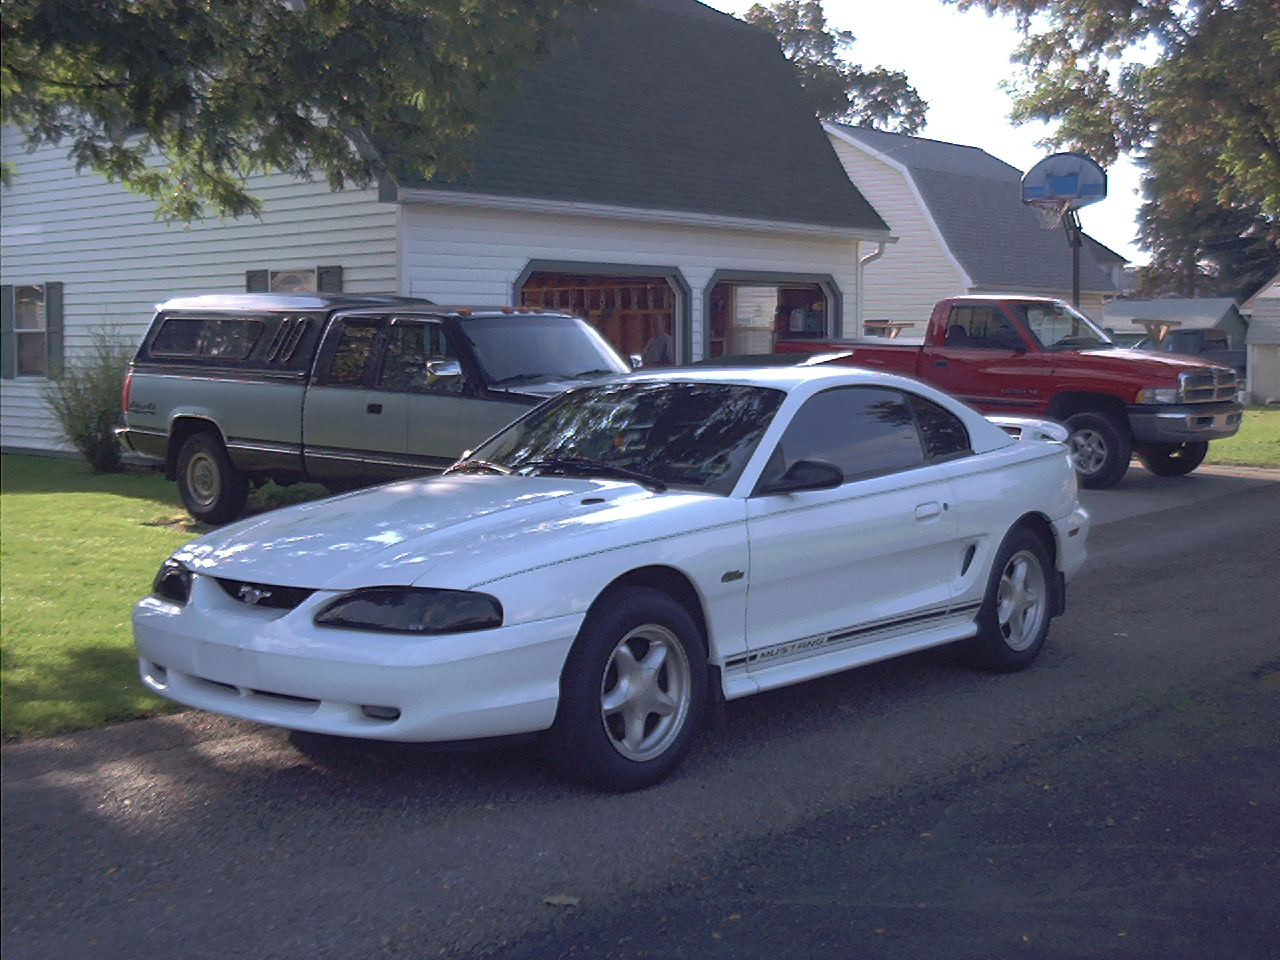 2009 Mustang Gt Specs >> 1998 Ford Mustang - Pictures - CarGurus